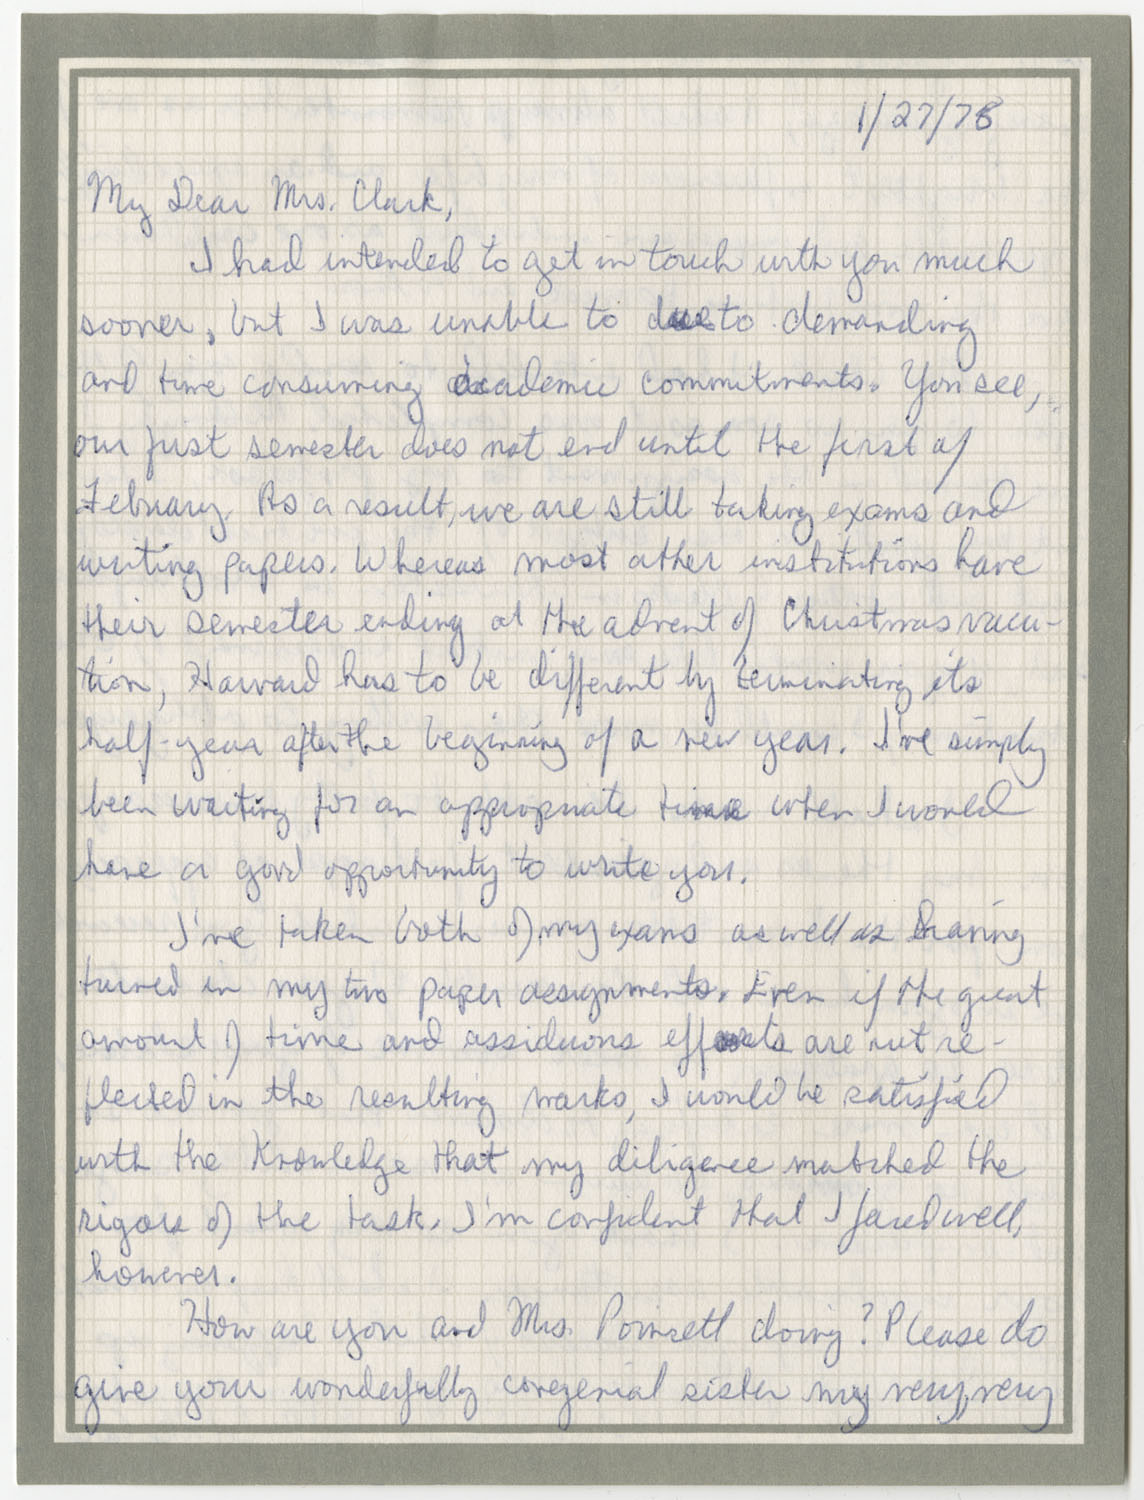 Letter from Tony L. Richardson to Septima P. Clark, January 27, 1976